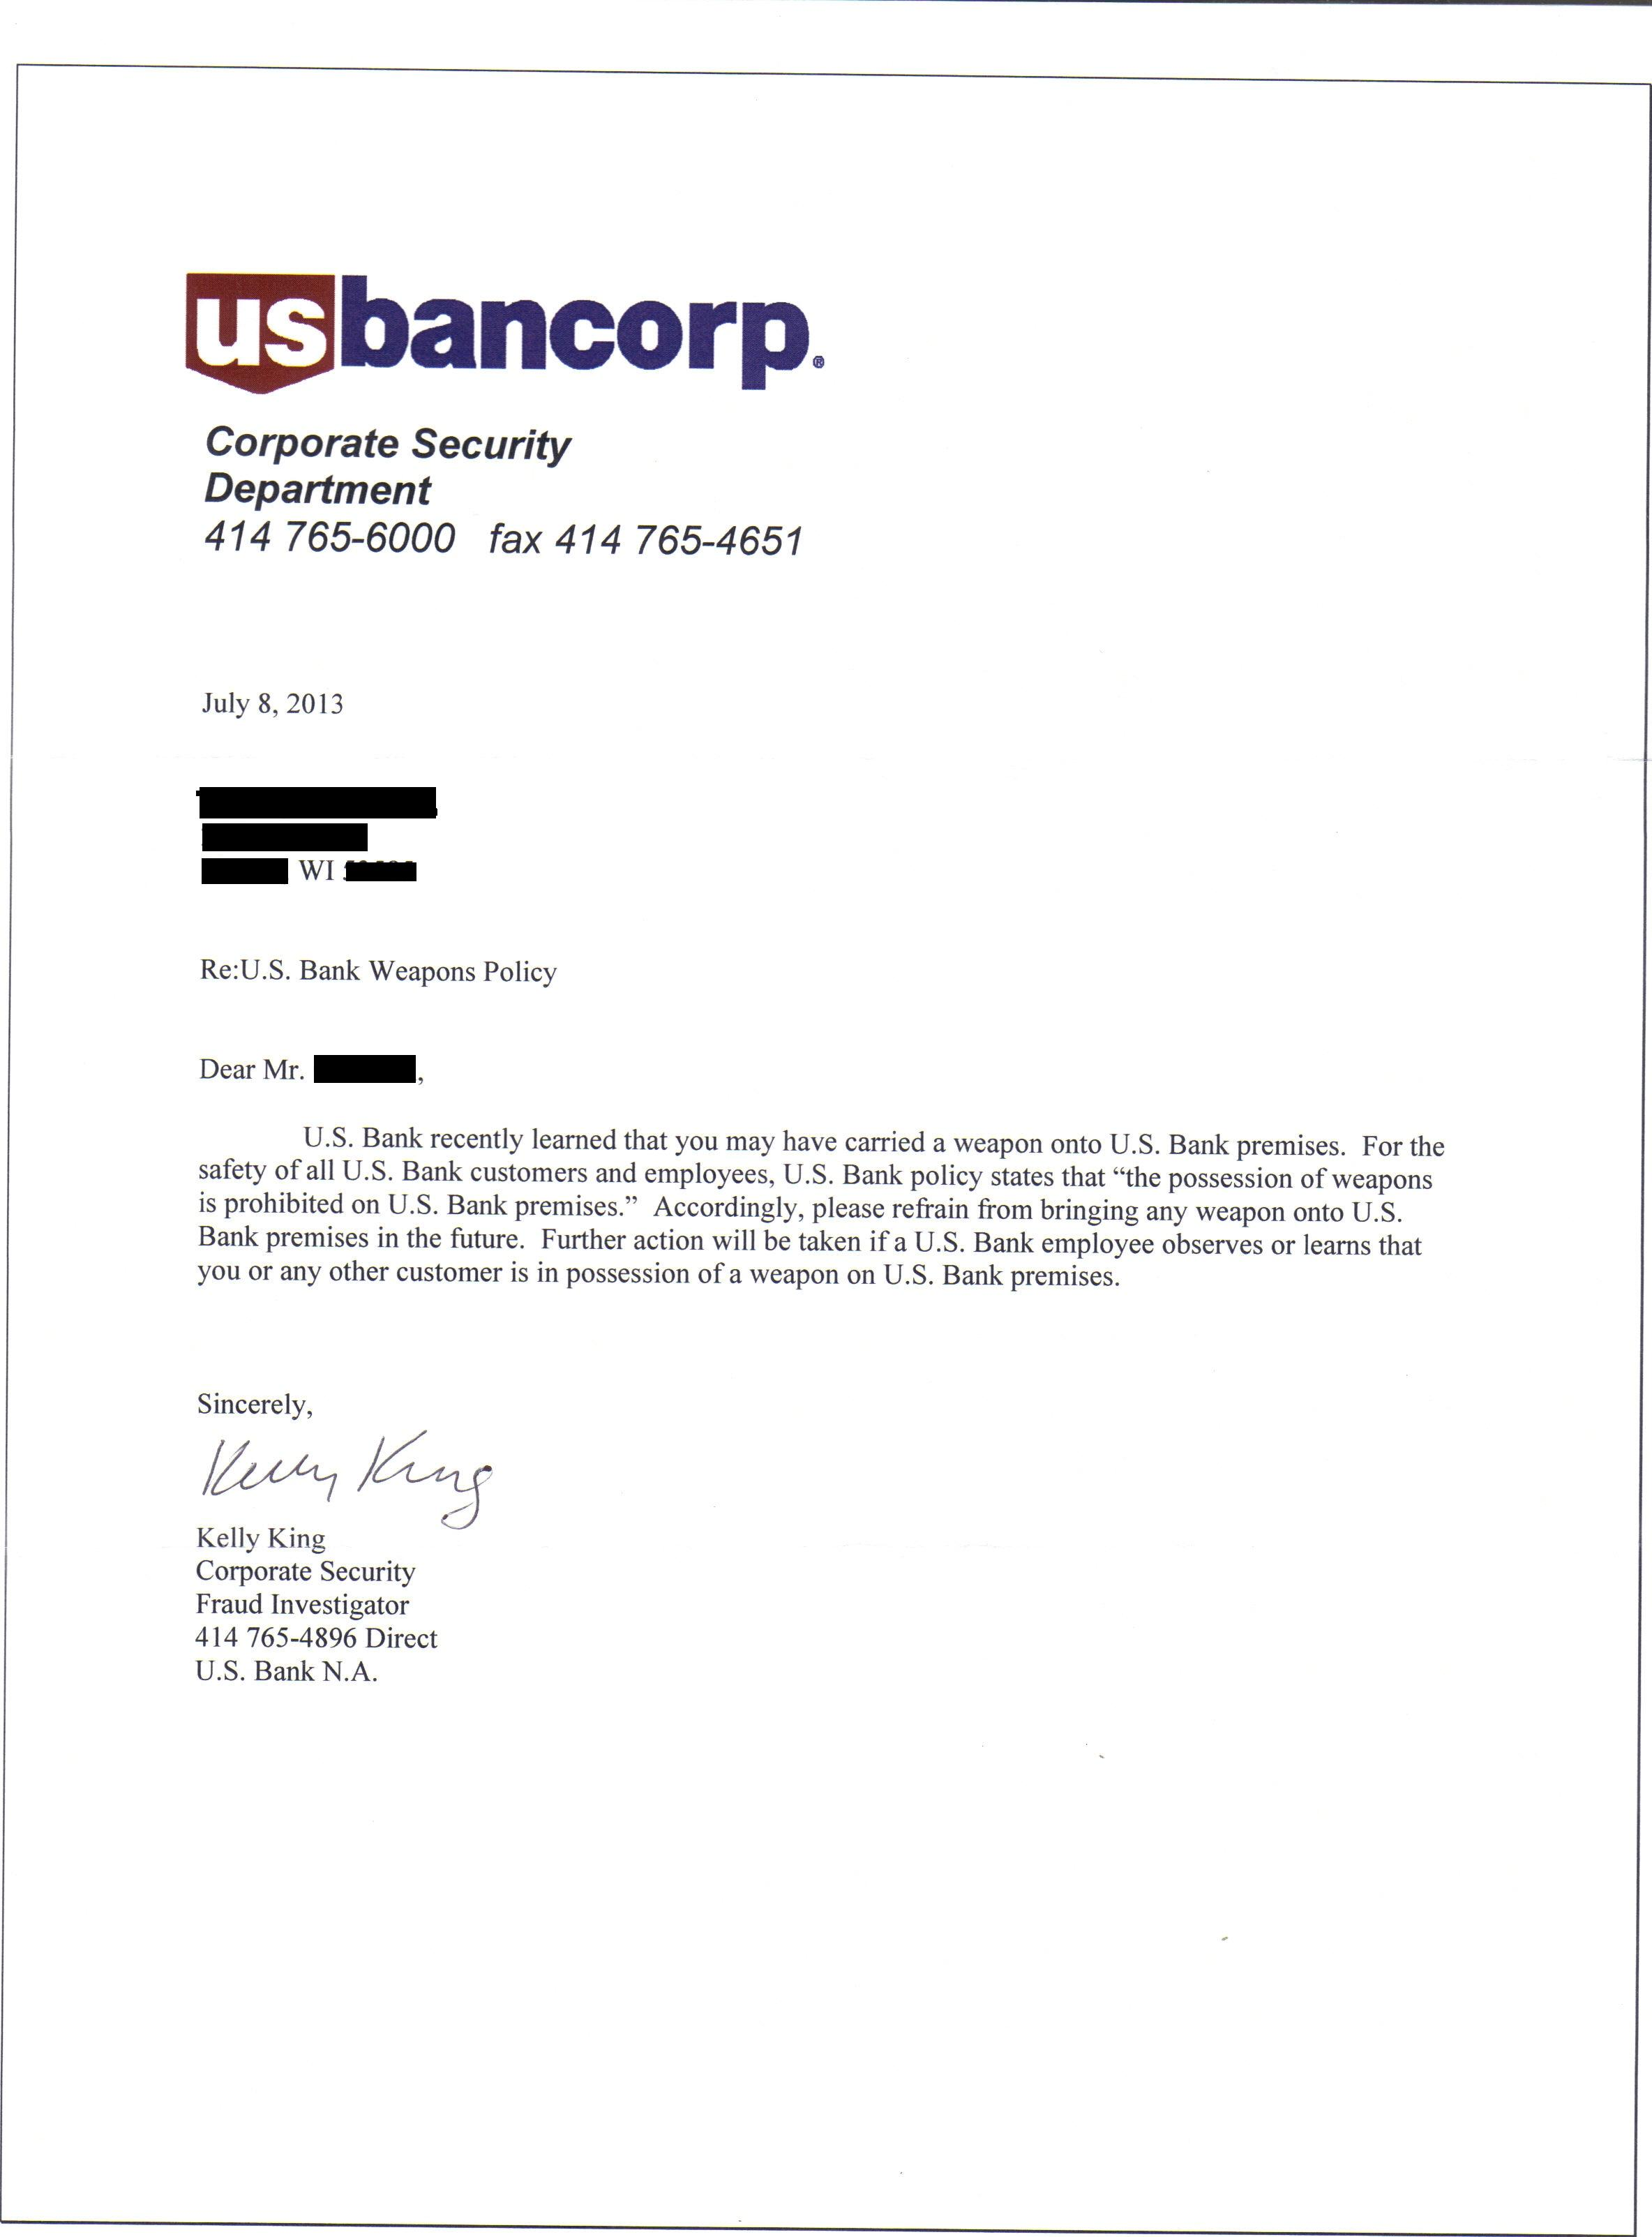 ... US Bank learned that you MAY HAVE carried a weapon on to US Bank